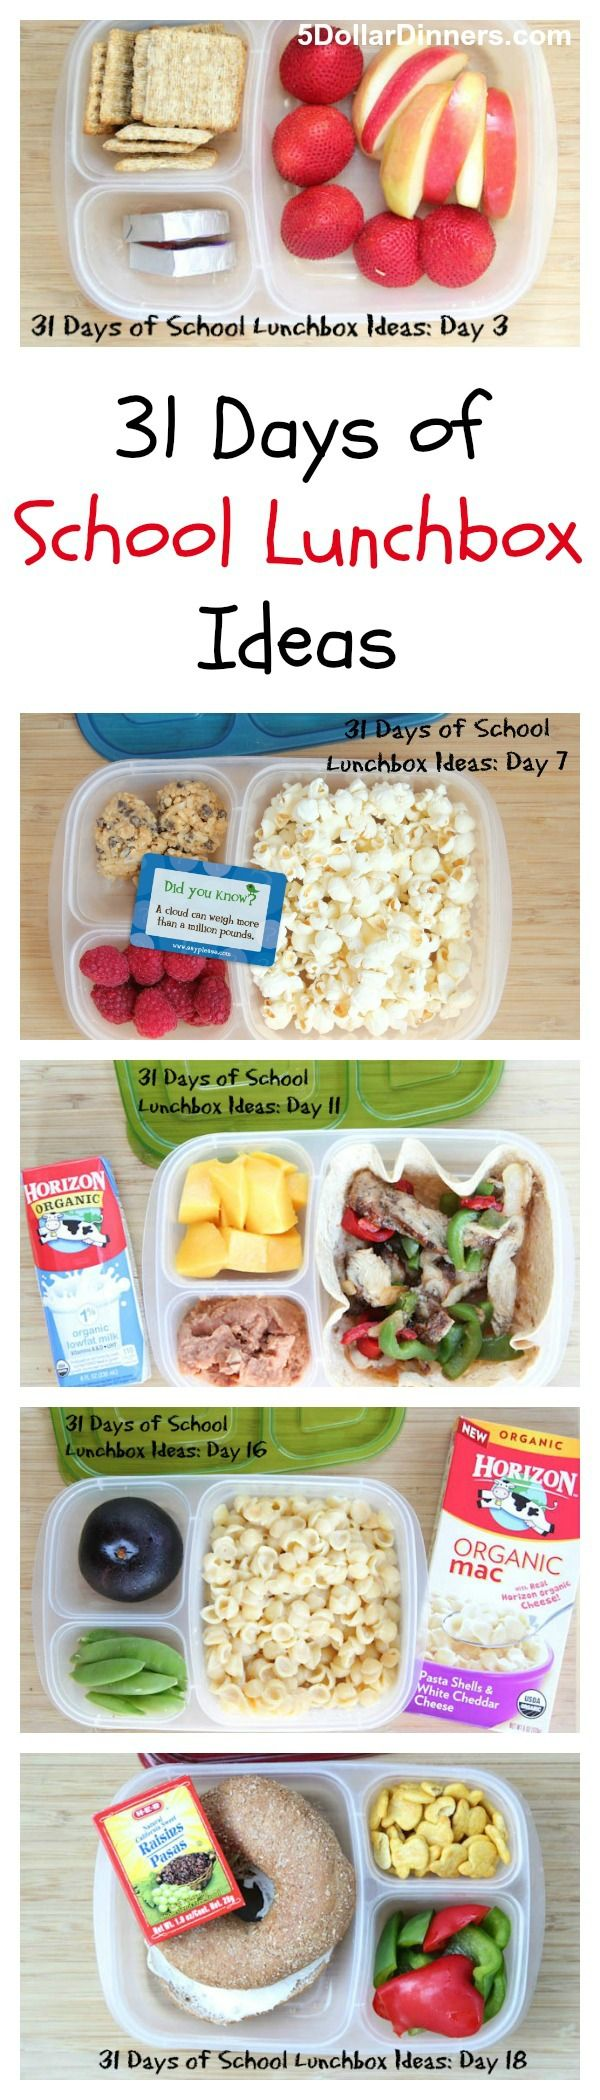 31 days of school lunchbox ideas healthy diet recipes pinterest essen pausenbrot und. Black Bedroom Furniture Sets. Home Design Ideas